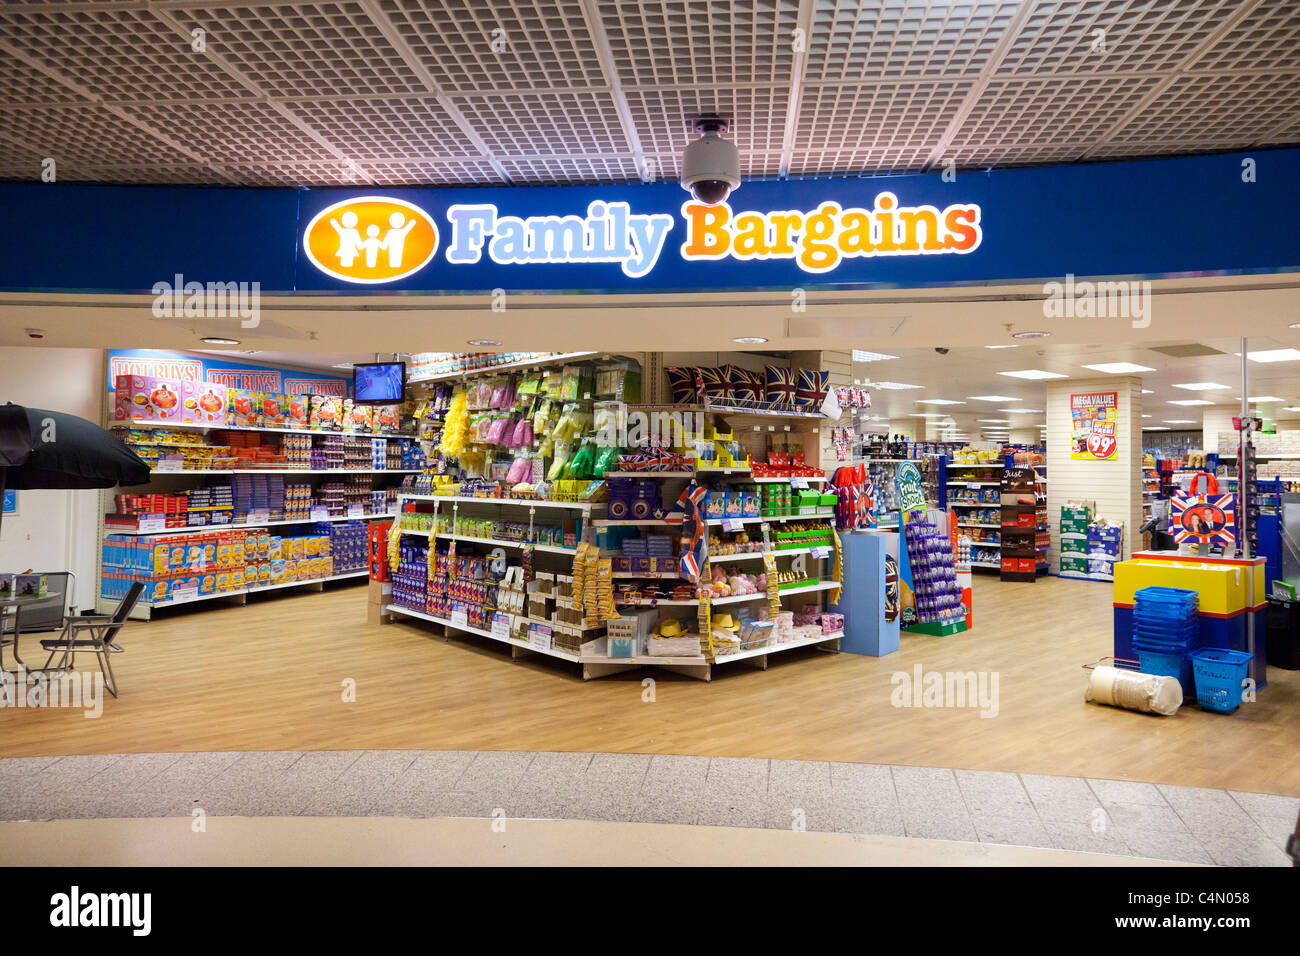 Family Bargains store - Stock Image